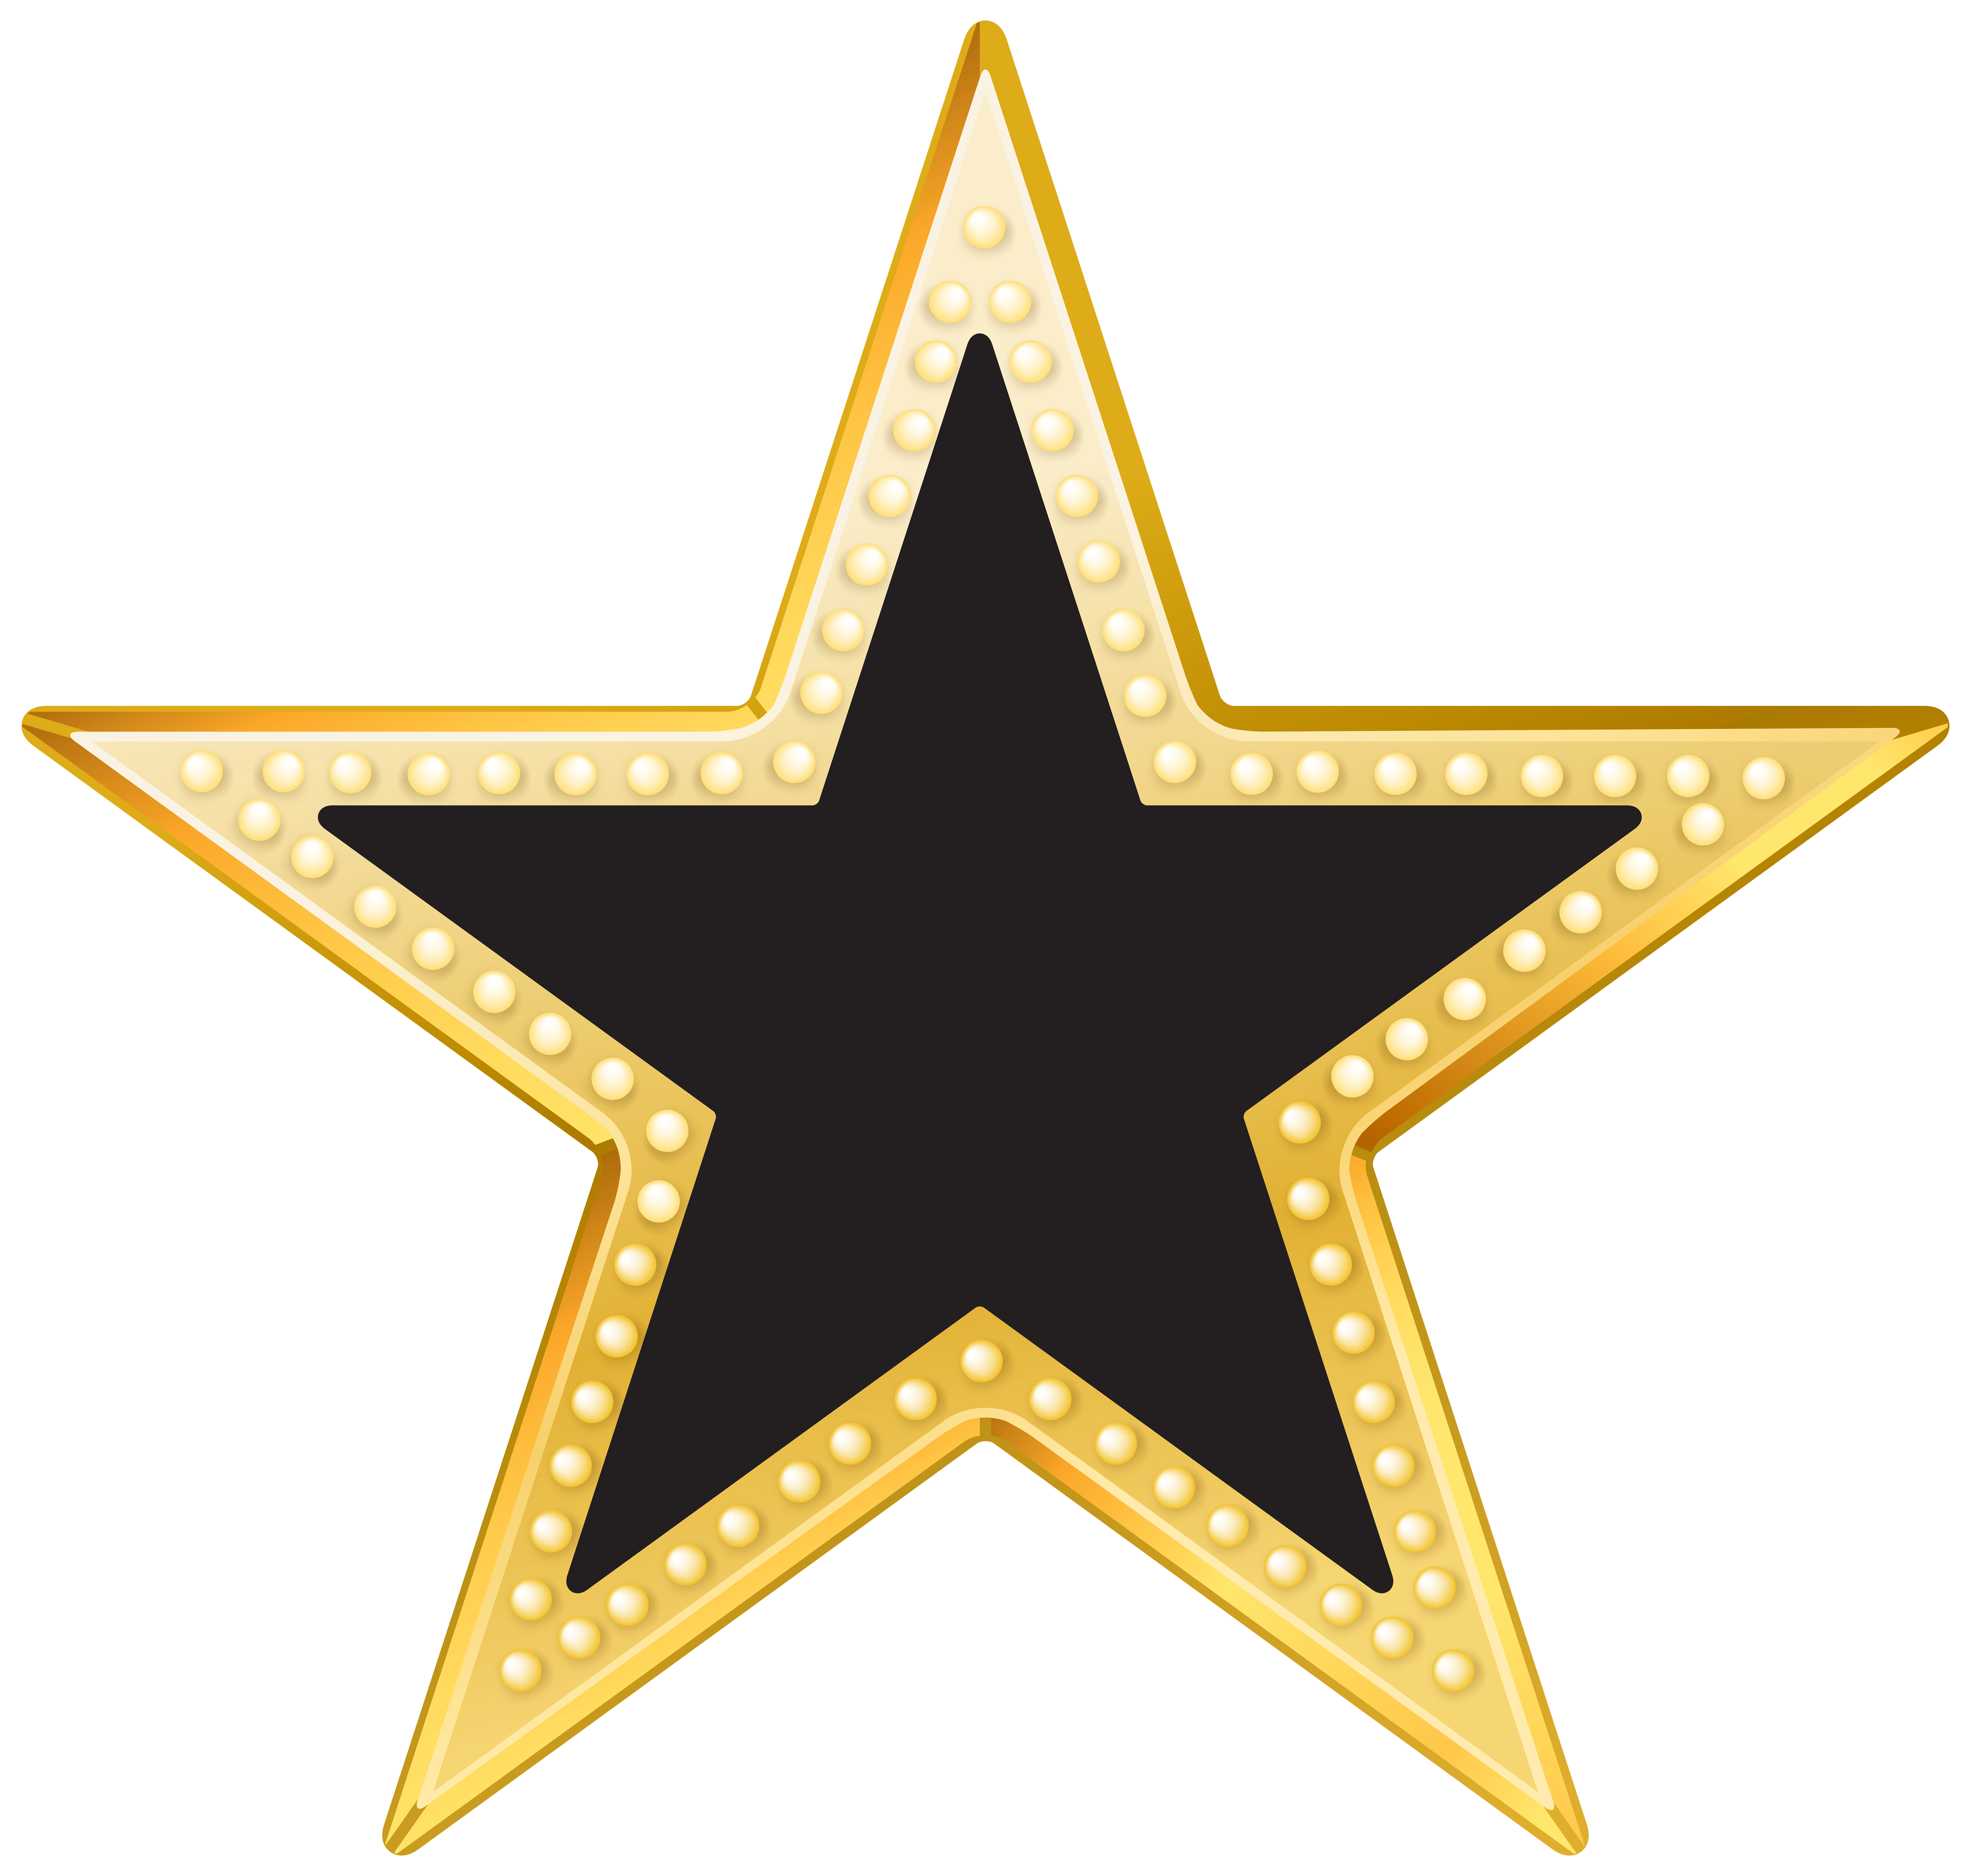 Star Clipart No Background